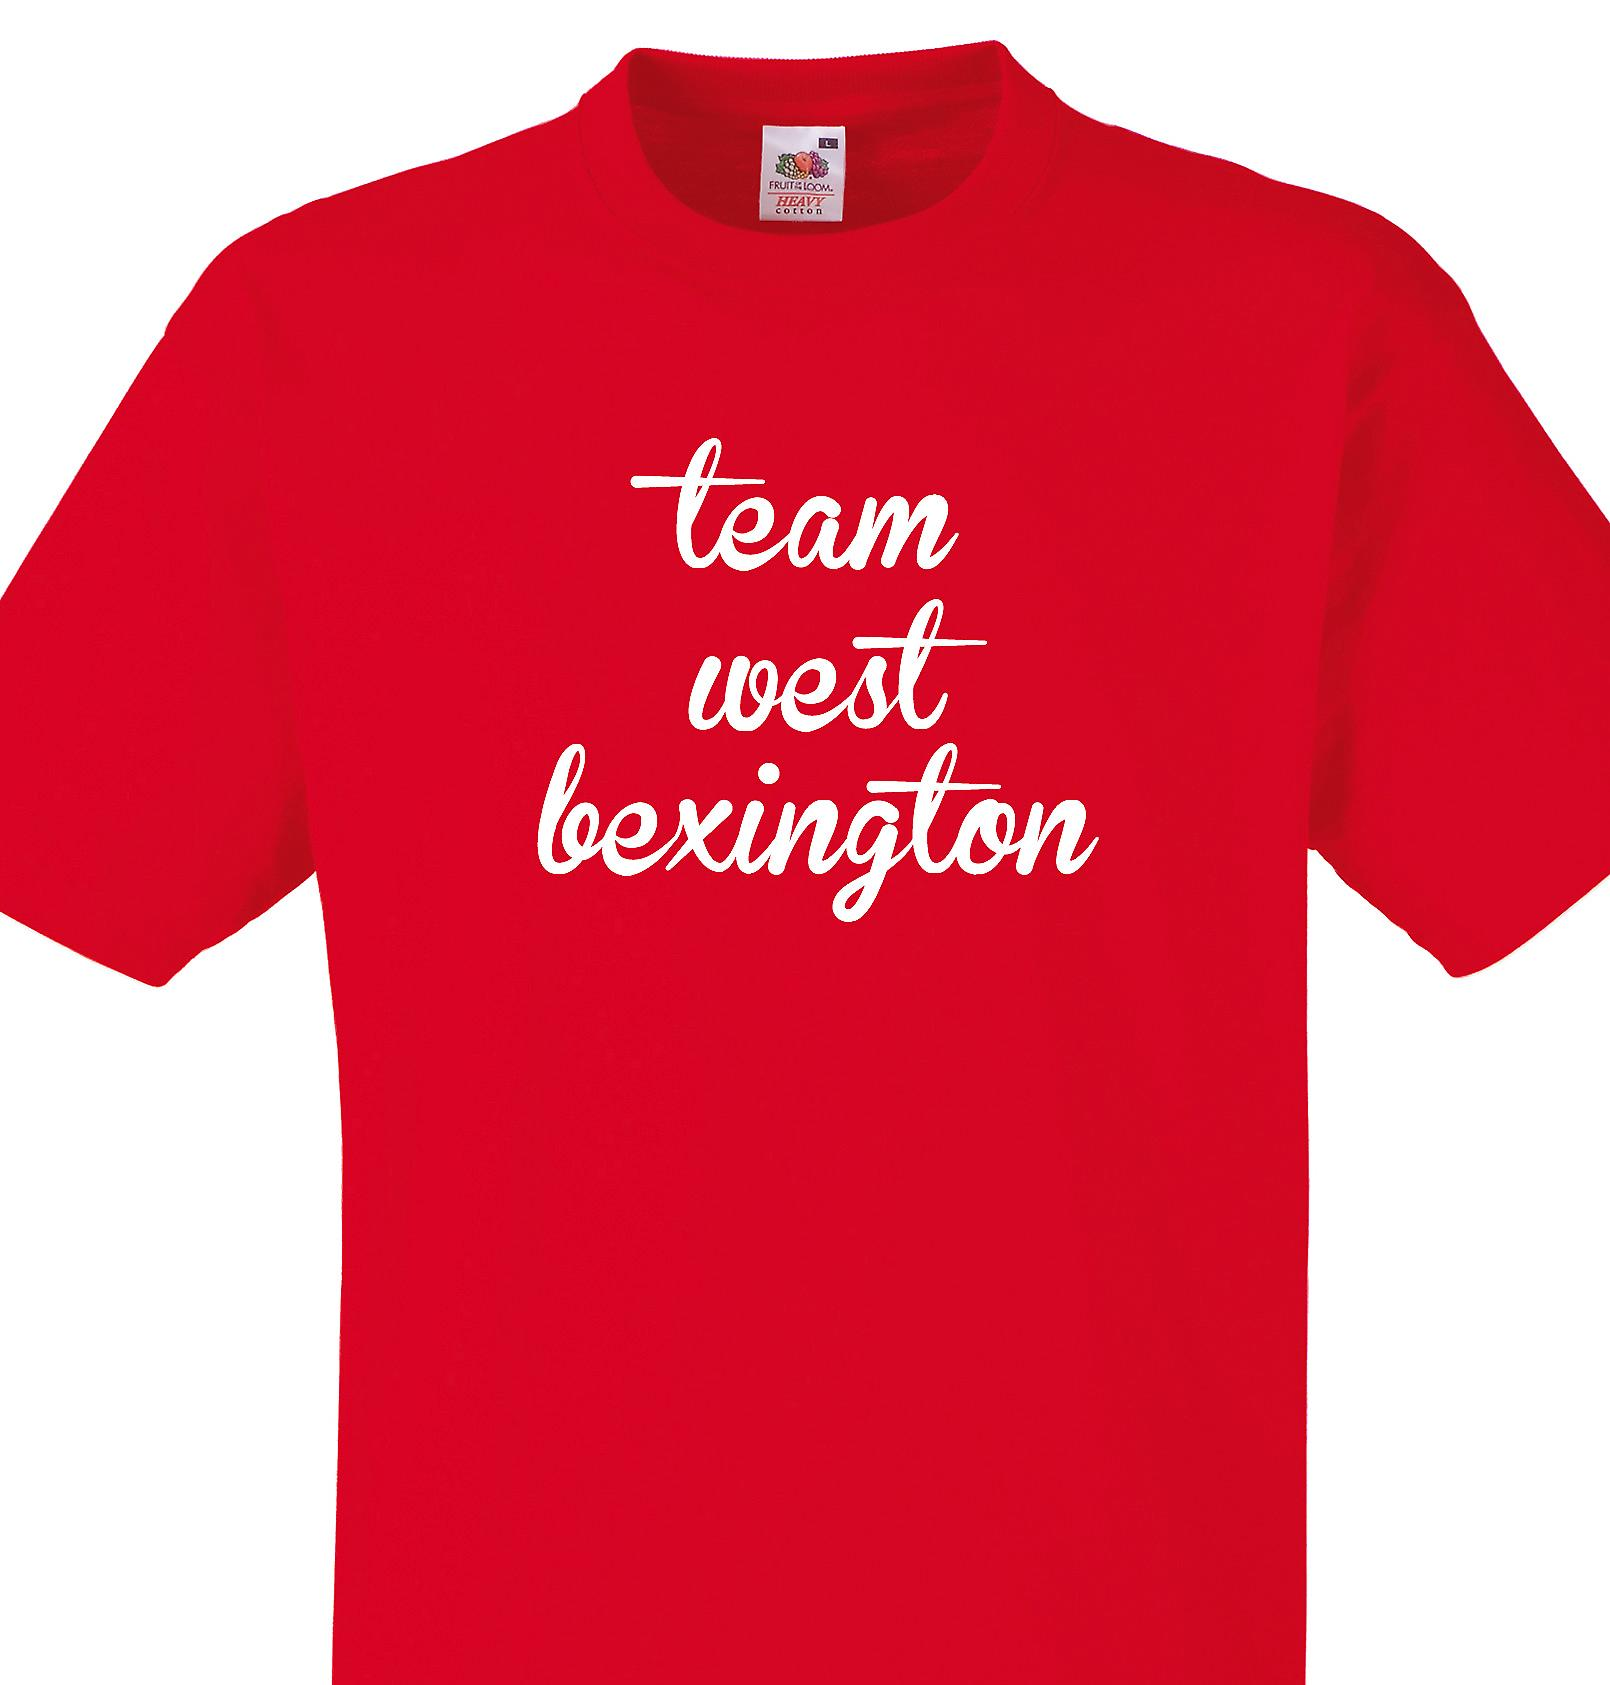 Team West bexington Red T shirt